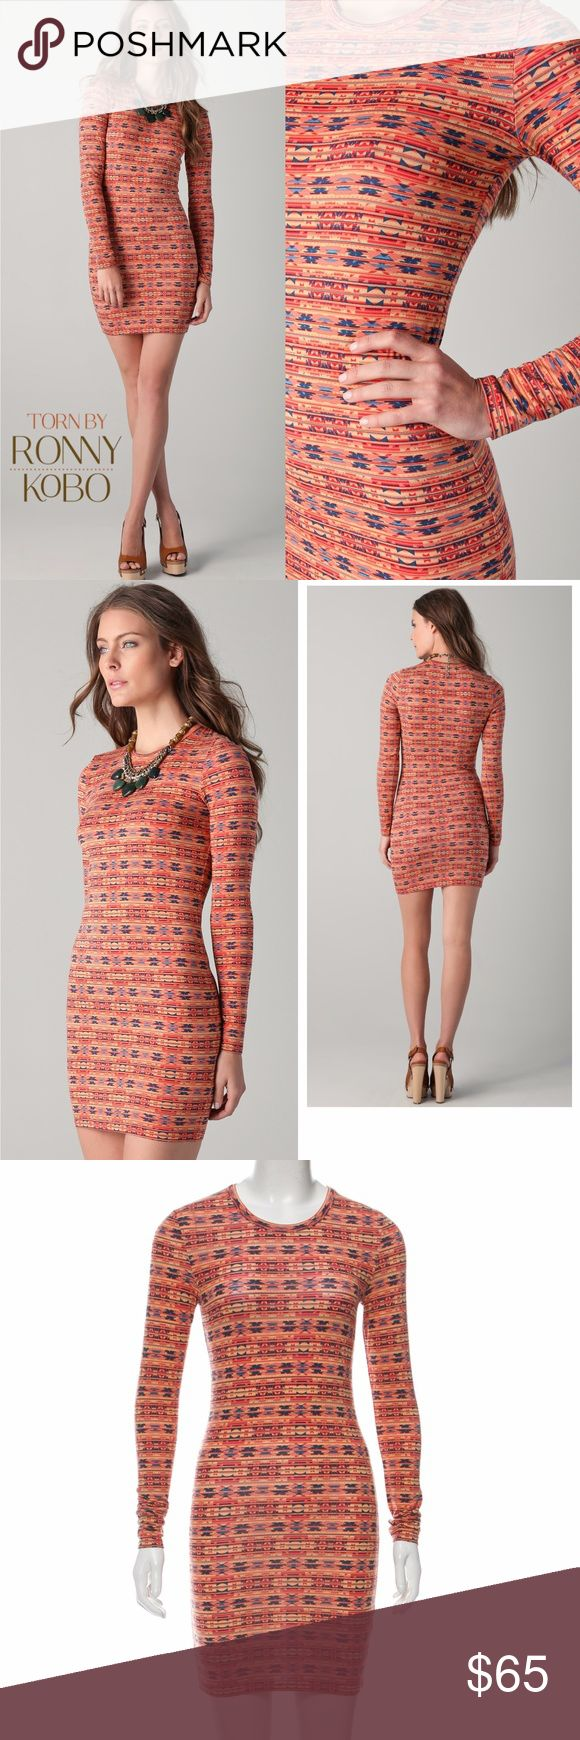 """NWT Torn by Ronny Kobo Patterned Bodycon Dress New with tags. Torn by Ronny Kobo Zoe Extra Small Azi Long Sleeve Dress in red/orange with blue and yellow abstract print. This print jersey dress features a crew neck and long sleeves. Measures 31"""" long with approximate waist size of 26"""". 92% Modal, 8% Spandex. Wash cold and lay flat to dry. Torn by Ronny Kobo Dresses Long Sleeve"""